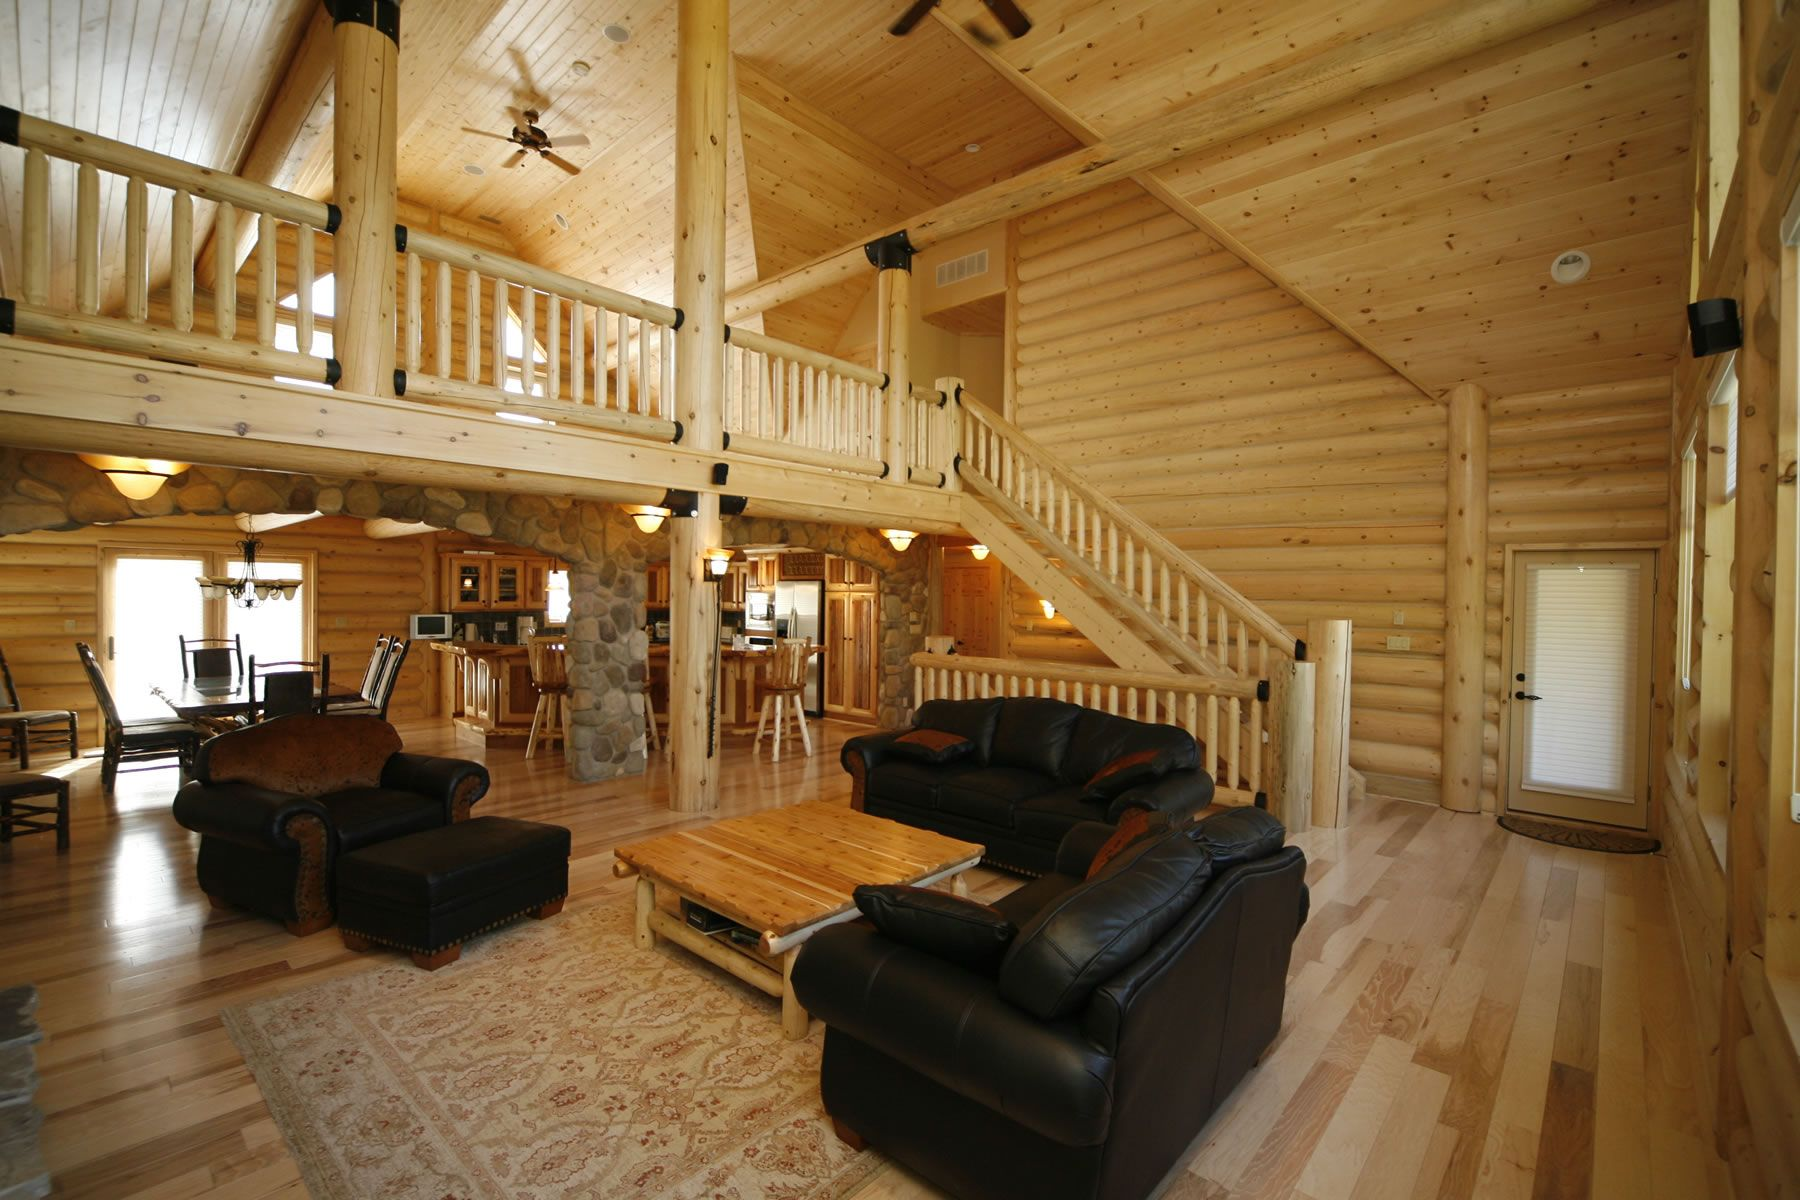 Log Home Interiors | Whisper Creek Log Homes | Oke Woodsmith Building  Systems Inc.